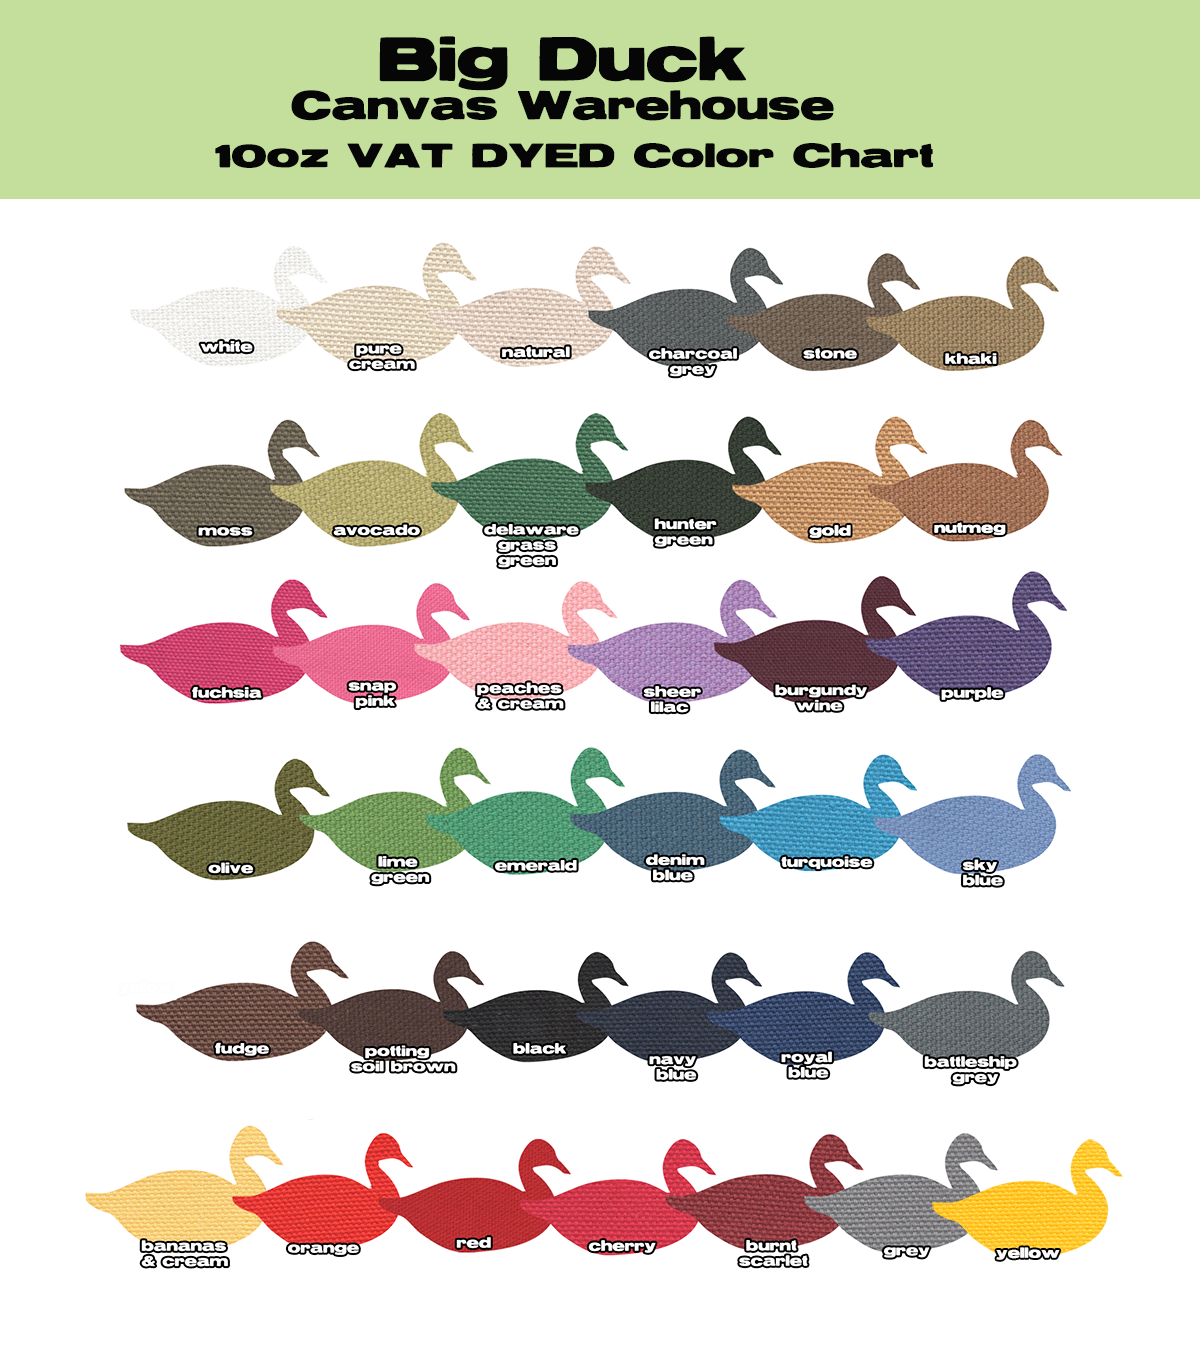 wholesale-10oz-ootton-duck-color-chart.png